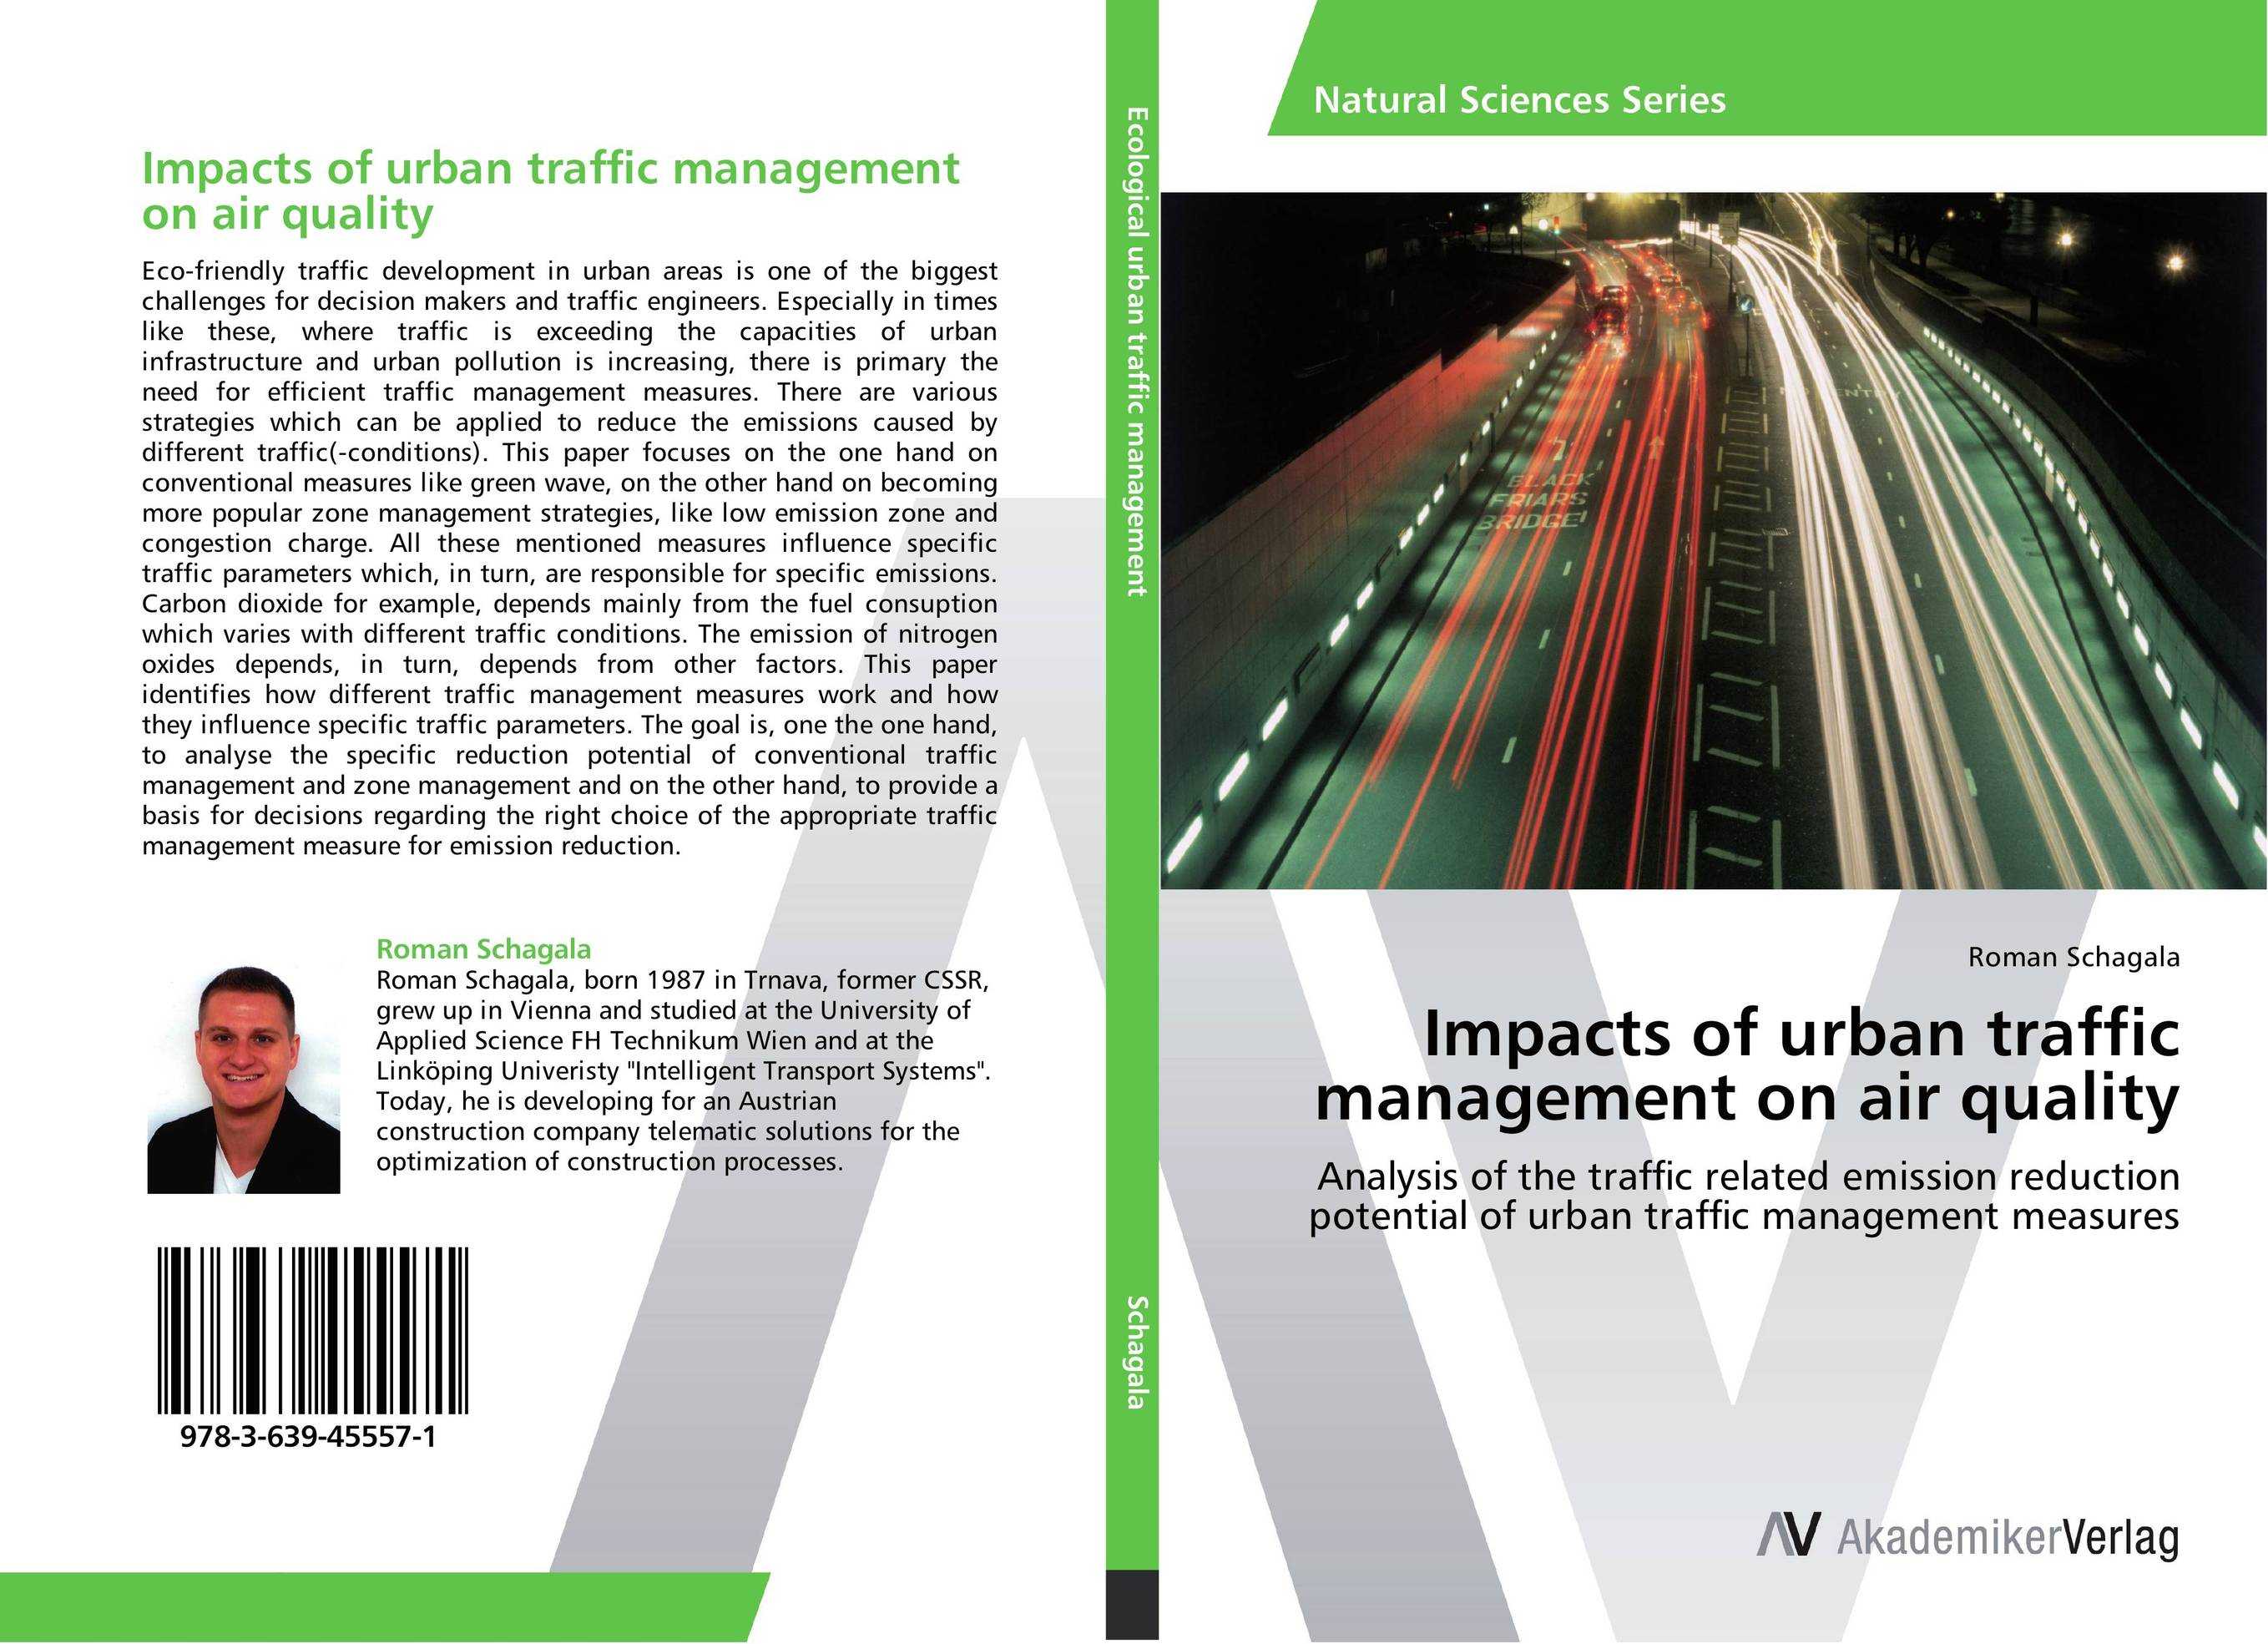 Impacts of urban traffic management on air quality impacts of urban traffic management on air quality